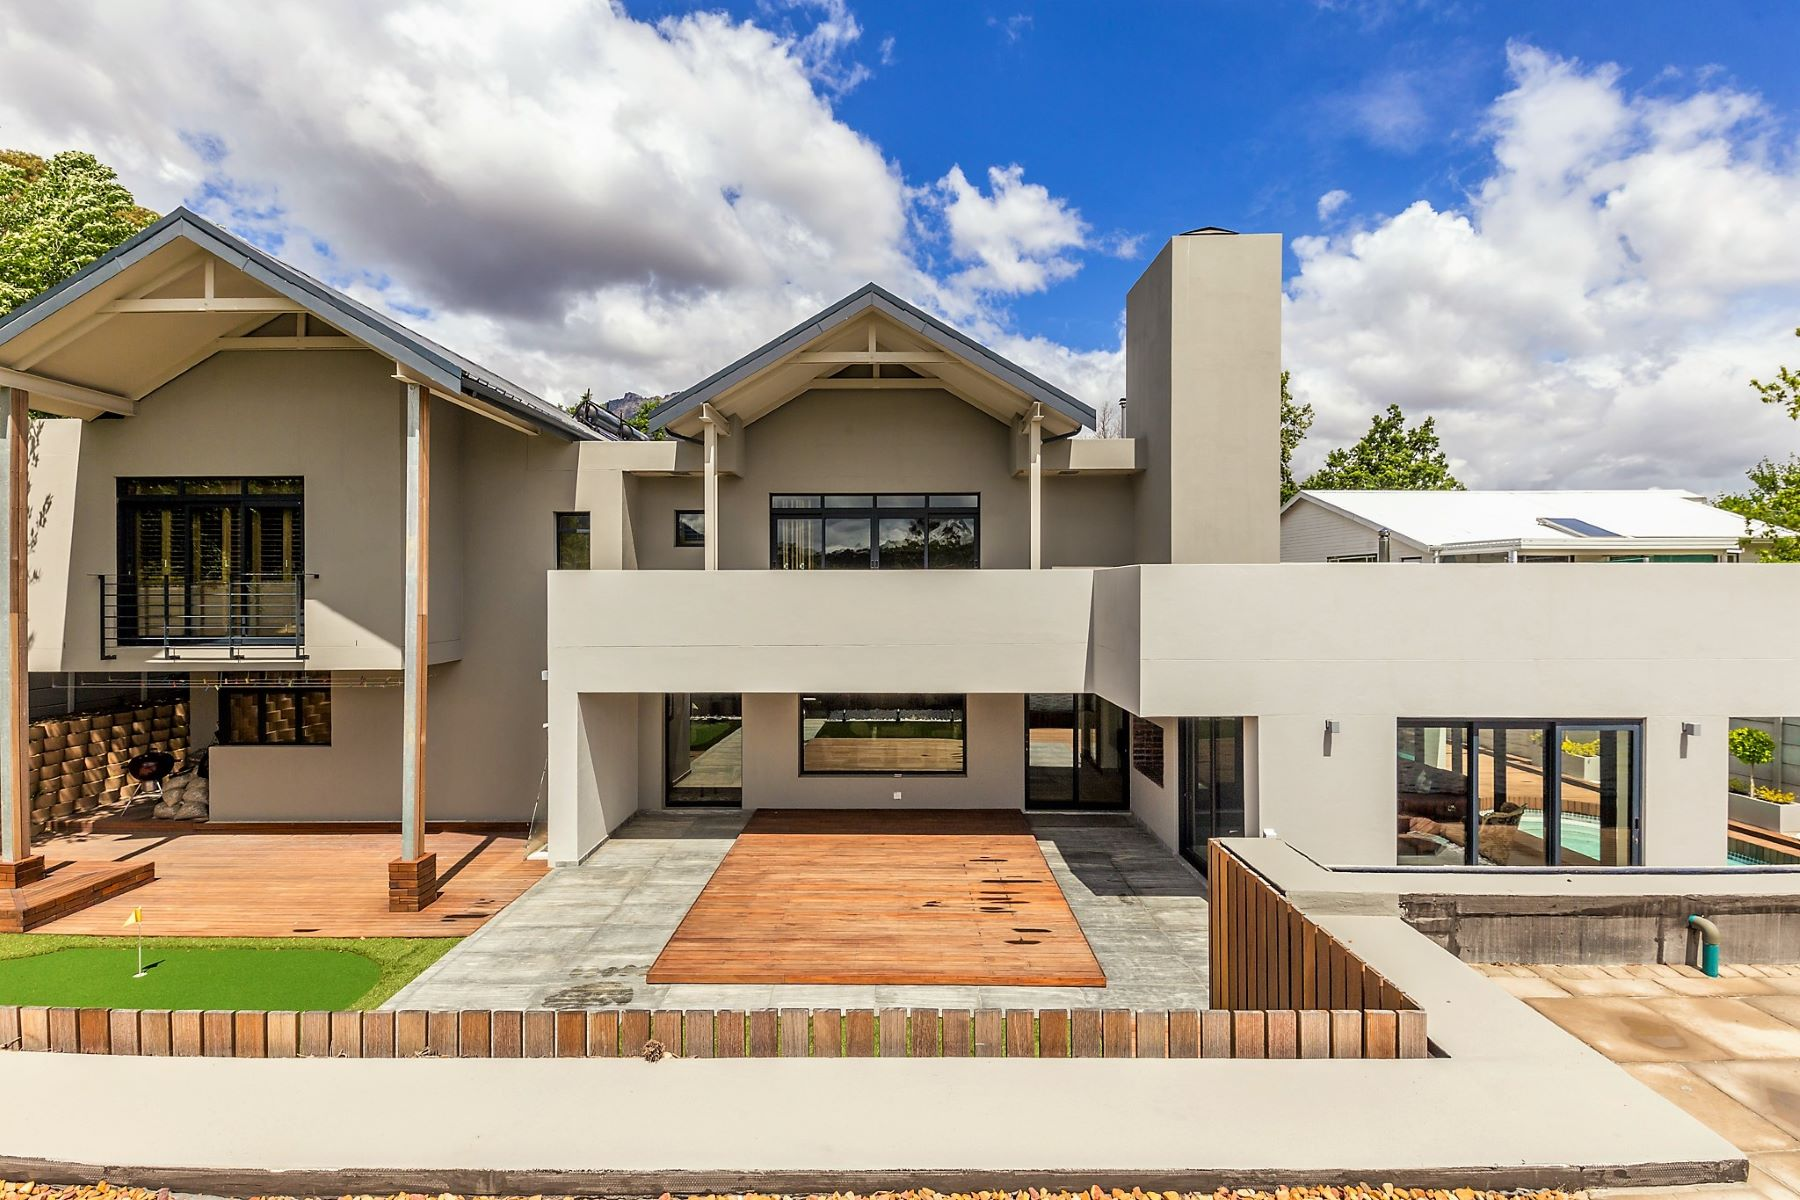 Single Family Home for Sale at Stellenbosch Stellenbosch, Western Cape, 7600 South Africa